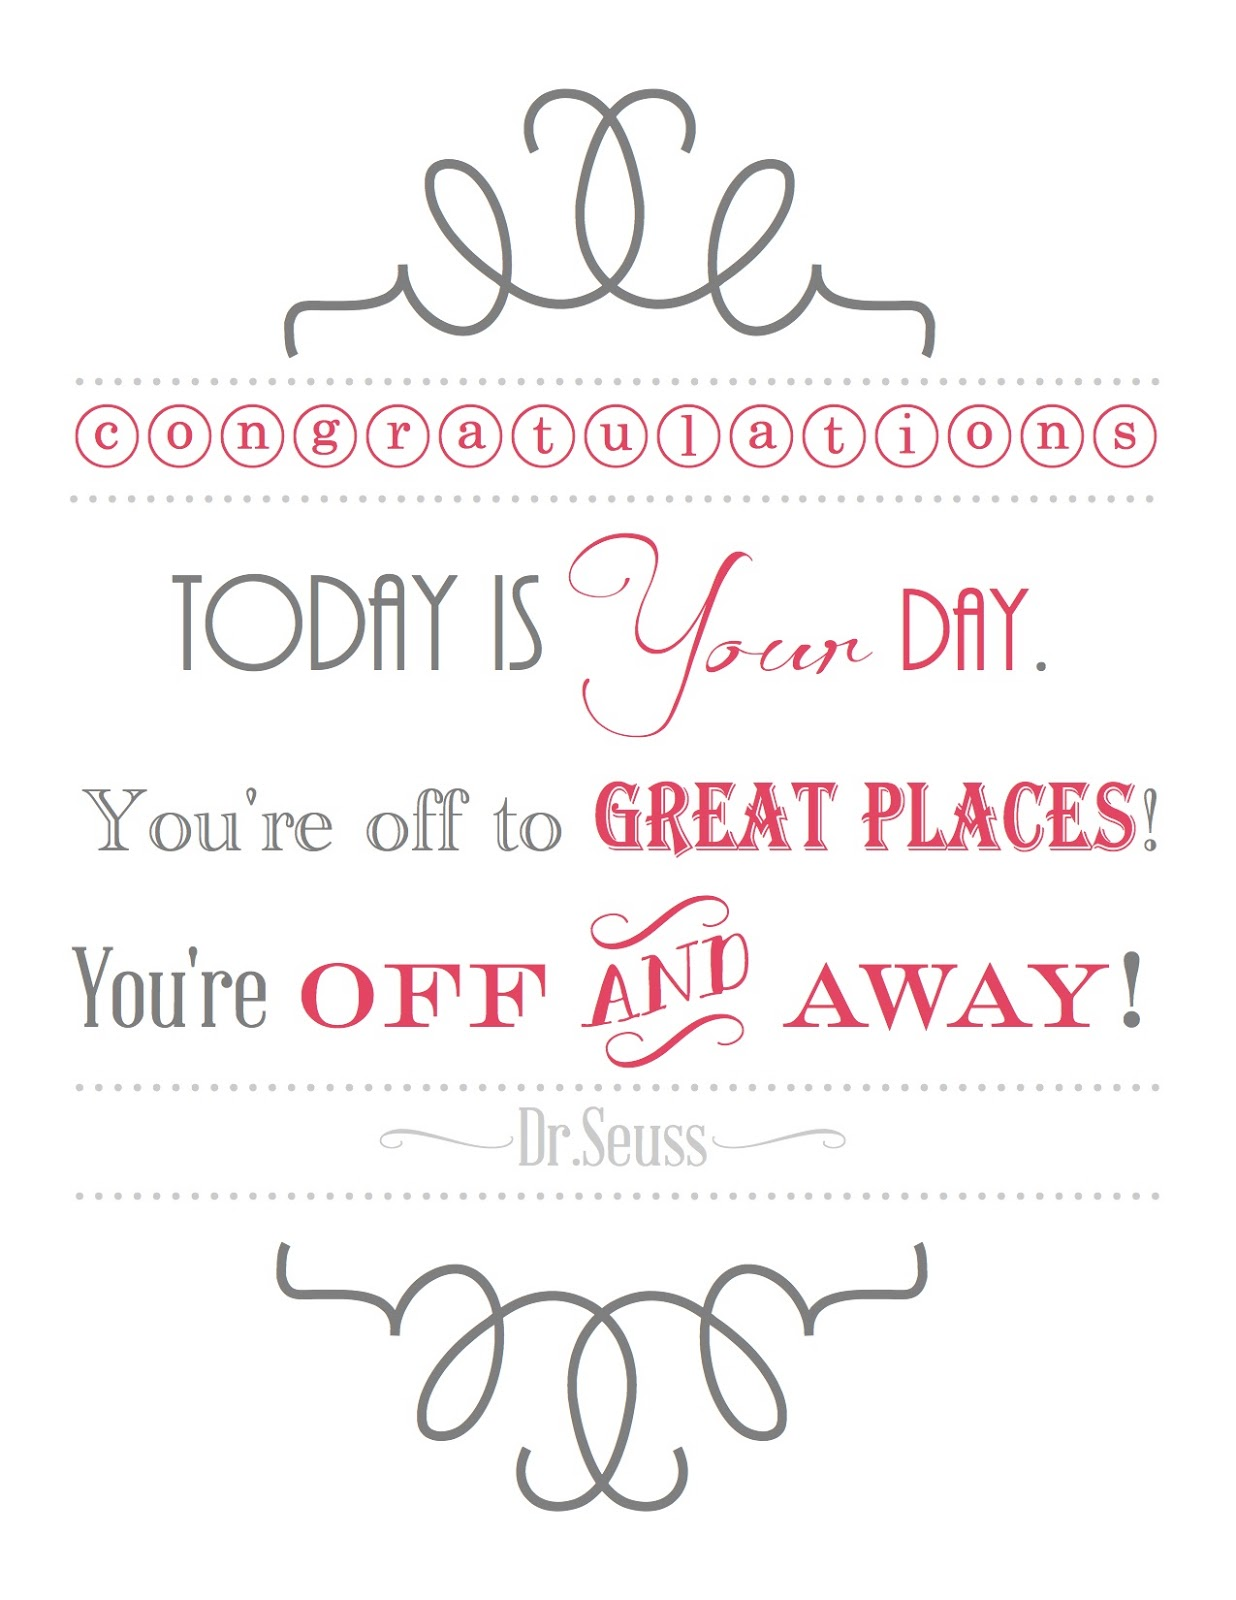 Dr Seuss Friendship Quotes Blissful Roots Drseuss Graduation Printable